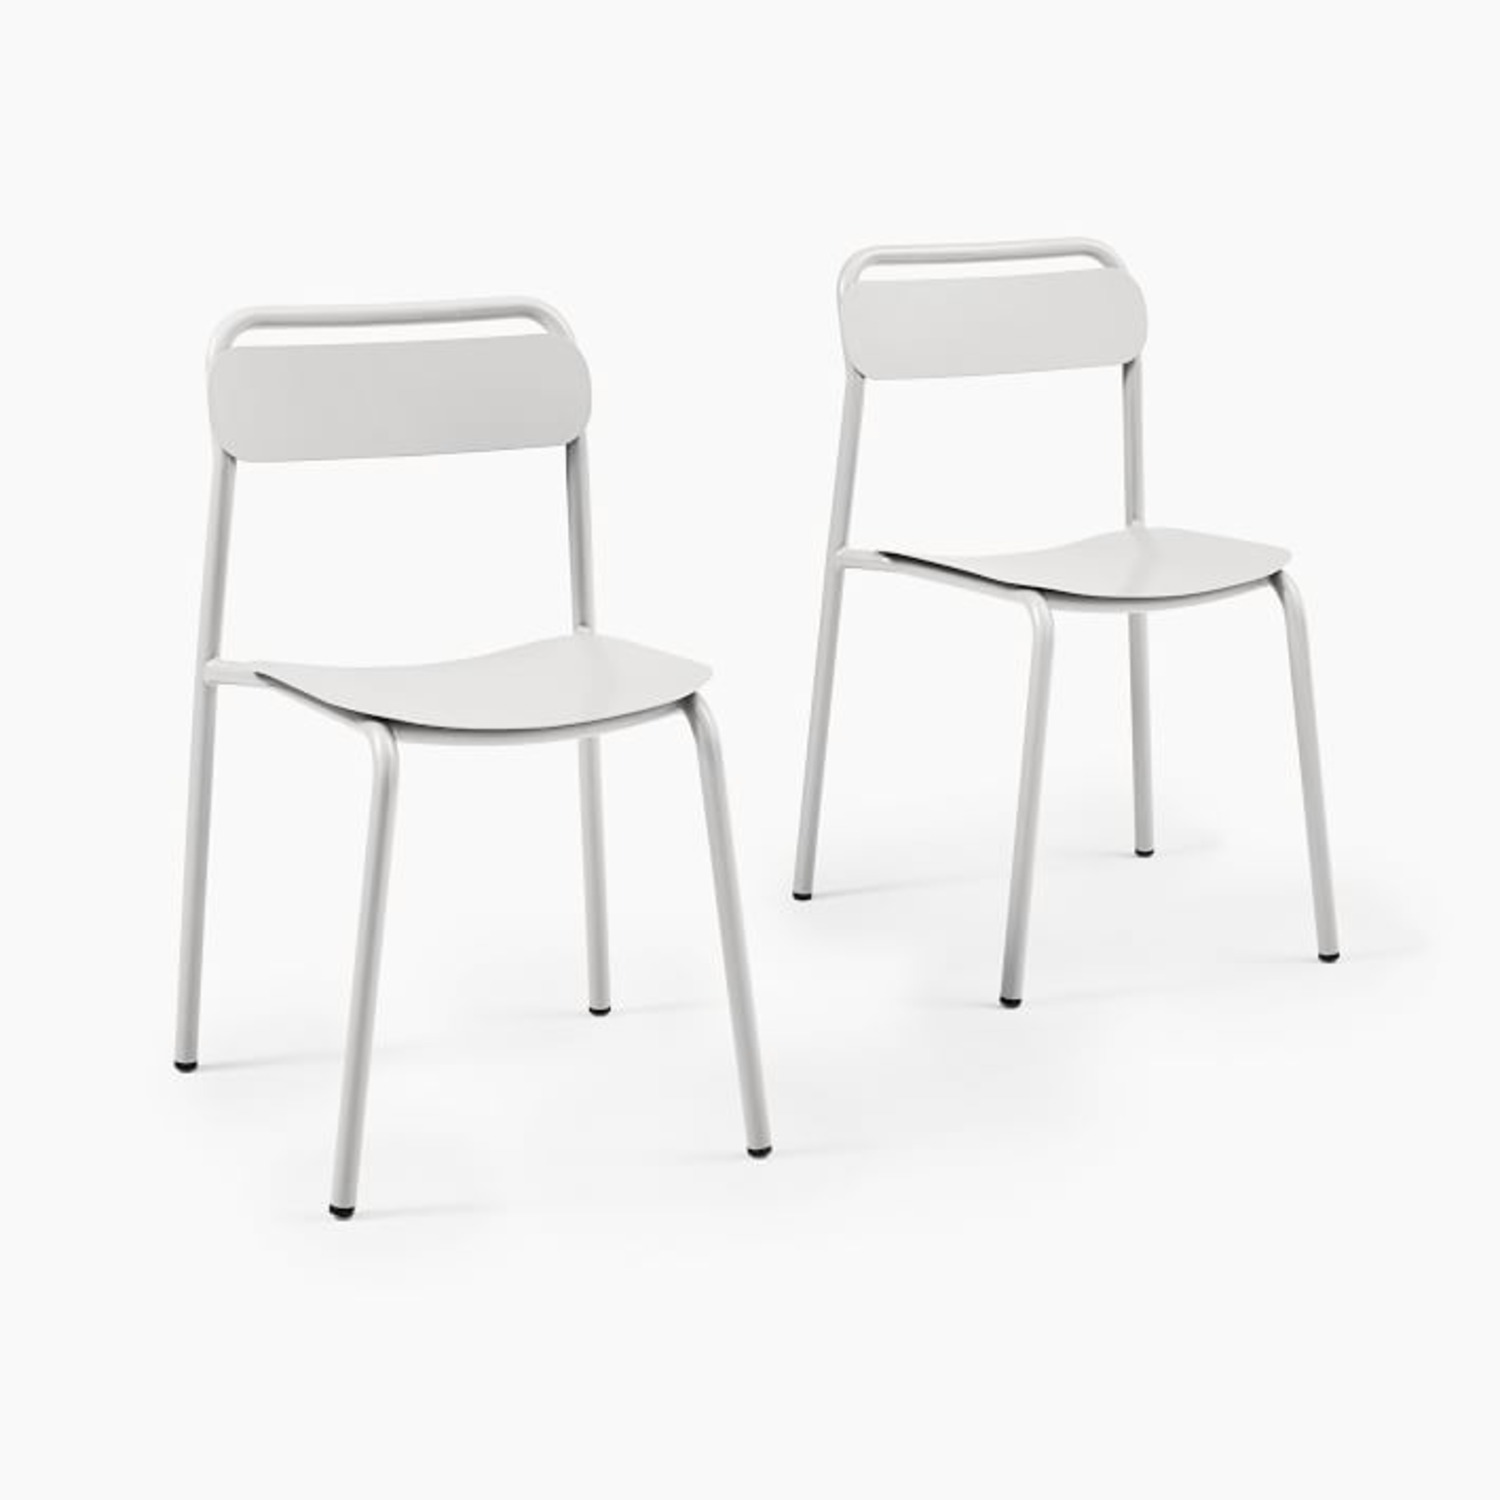 West Elm Outdoor Metal Stacking Chair,  Set of 2 - image-1